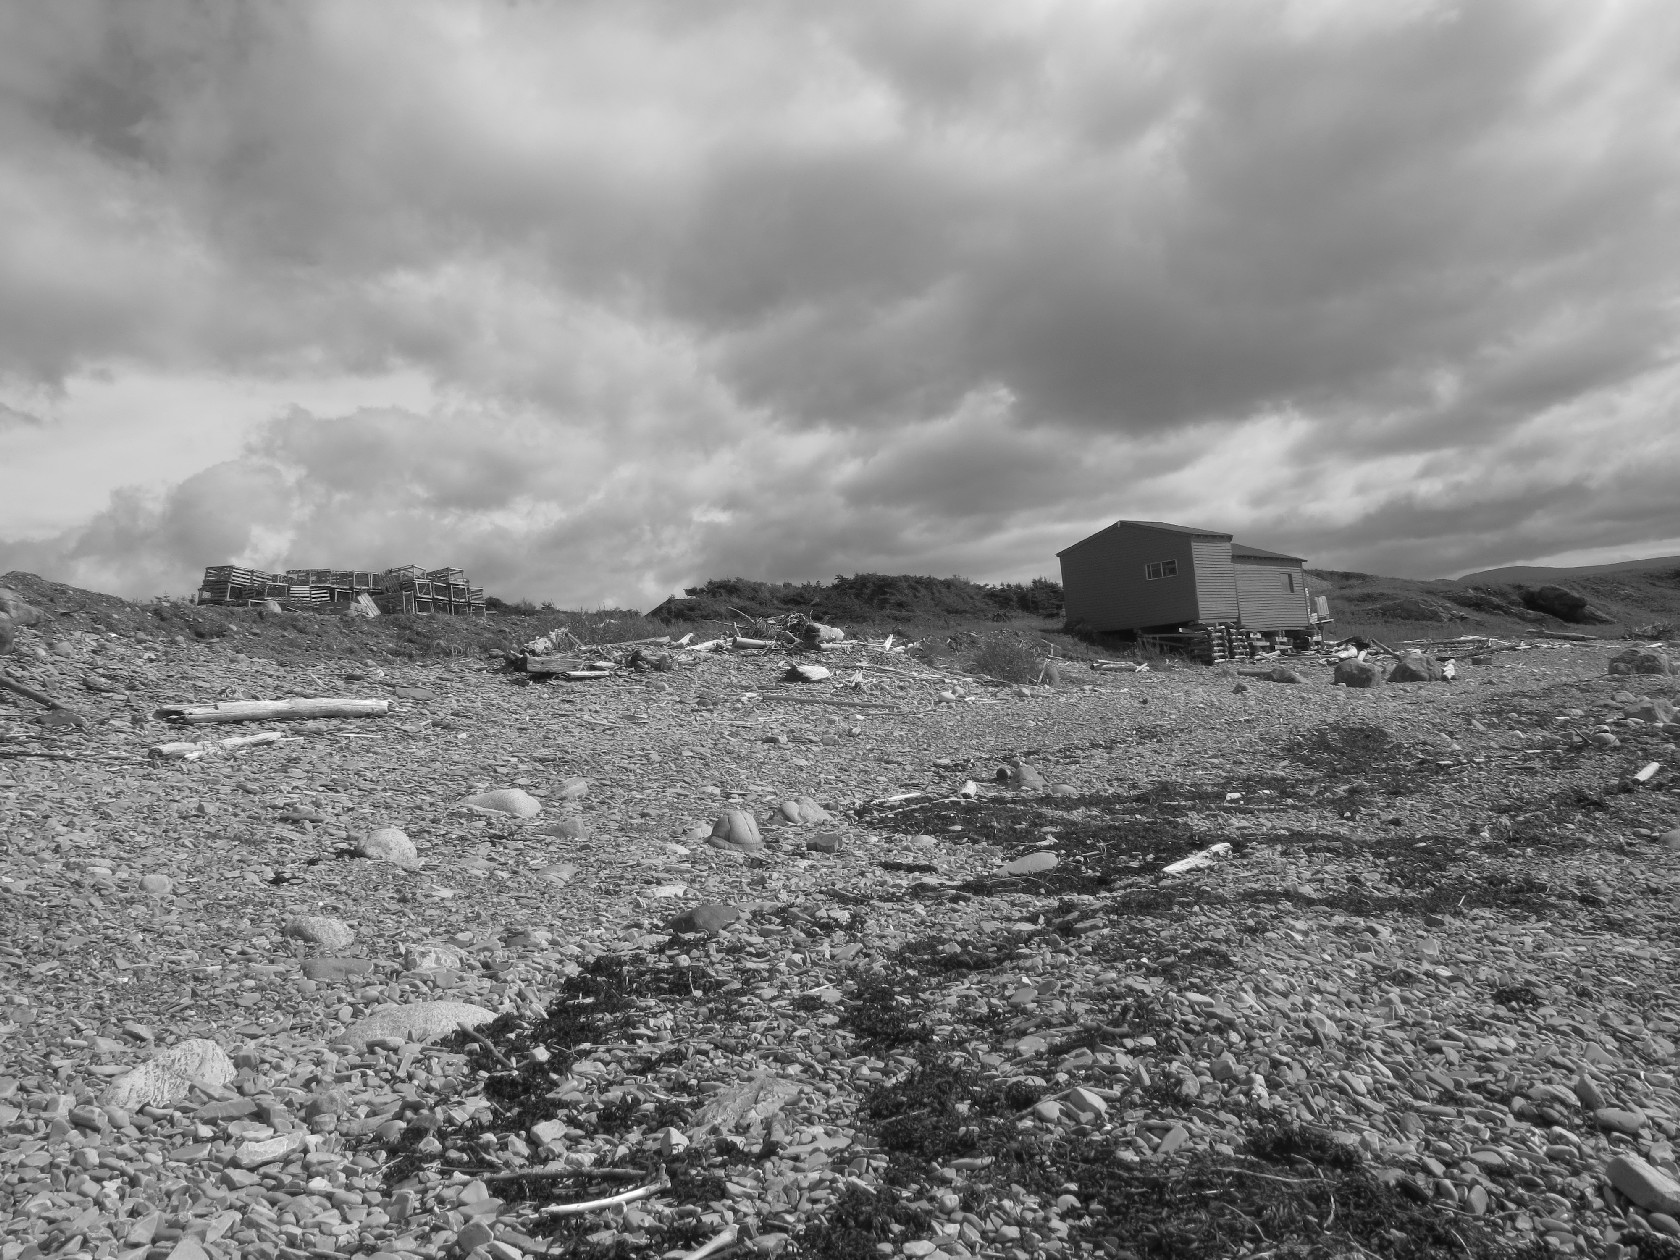 Forlorn, desolate huts at Broom's Point, Gros Morne coast